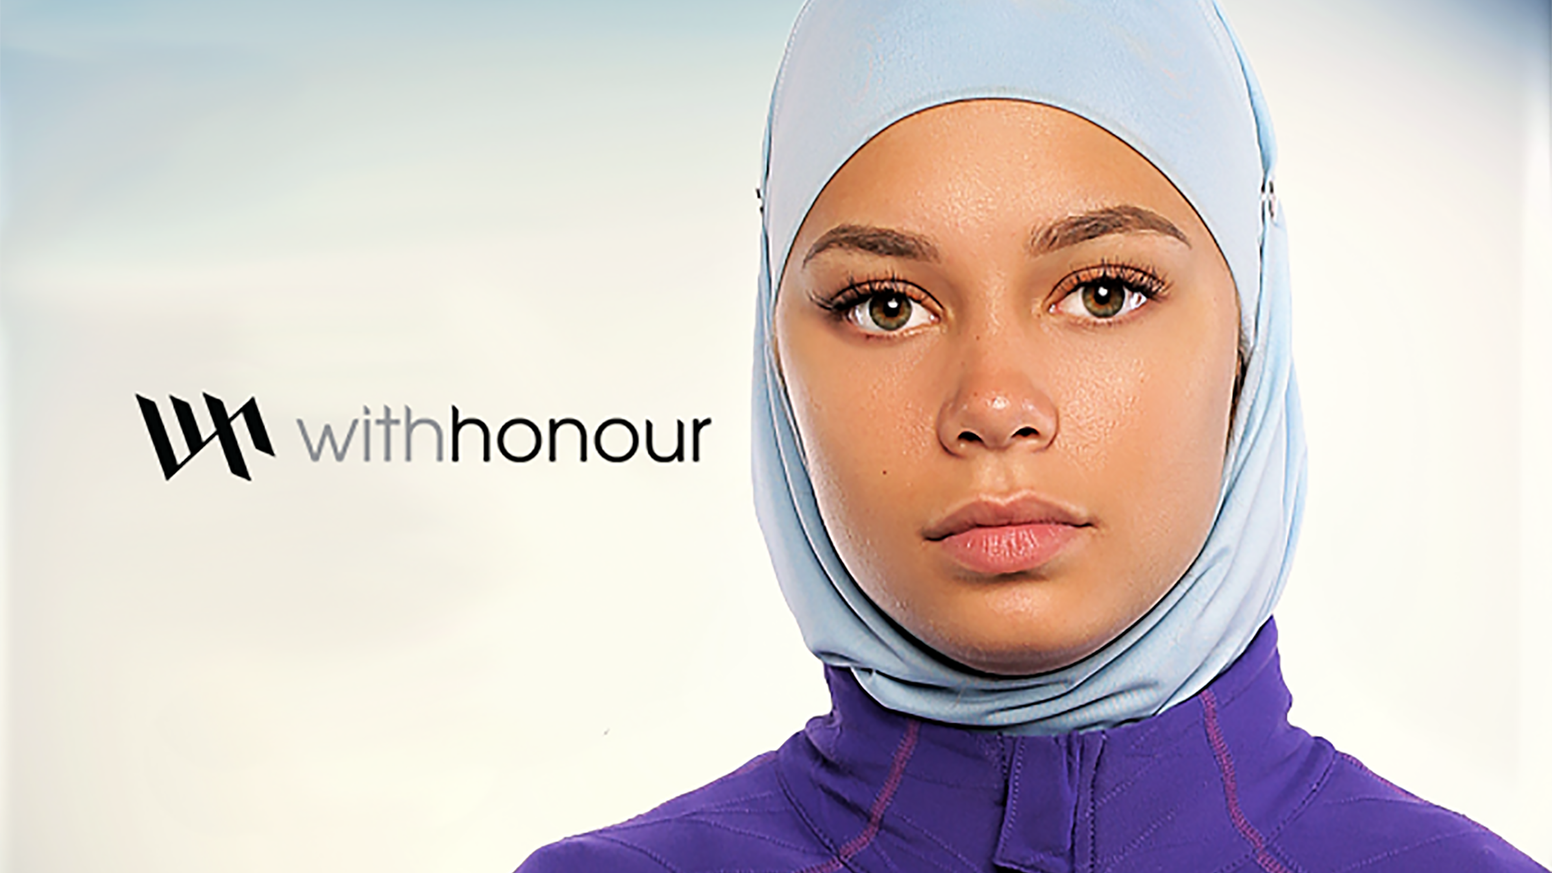 Performance apparel & hijab scientifically engineered to outperform even the major brands.